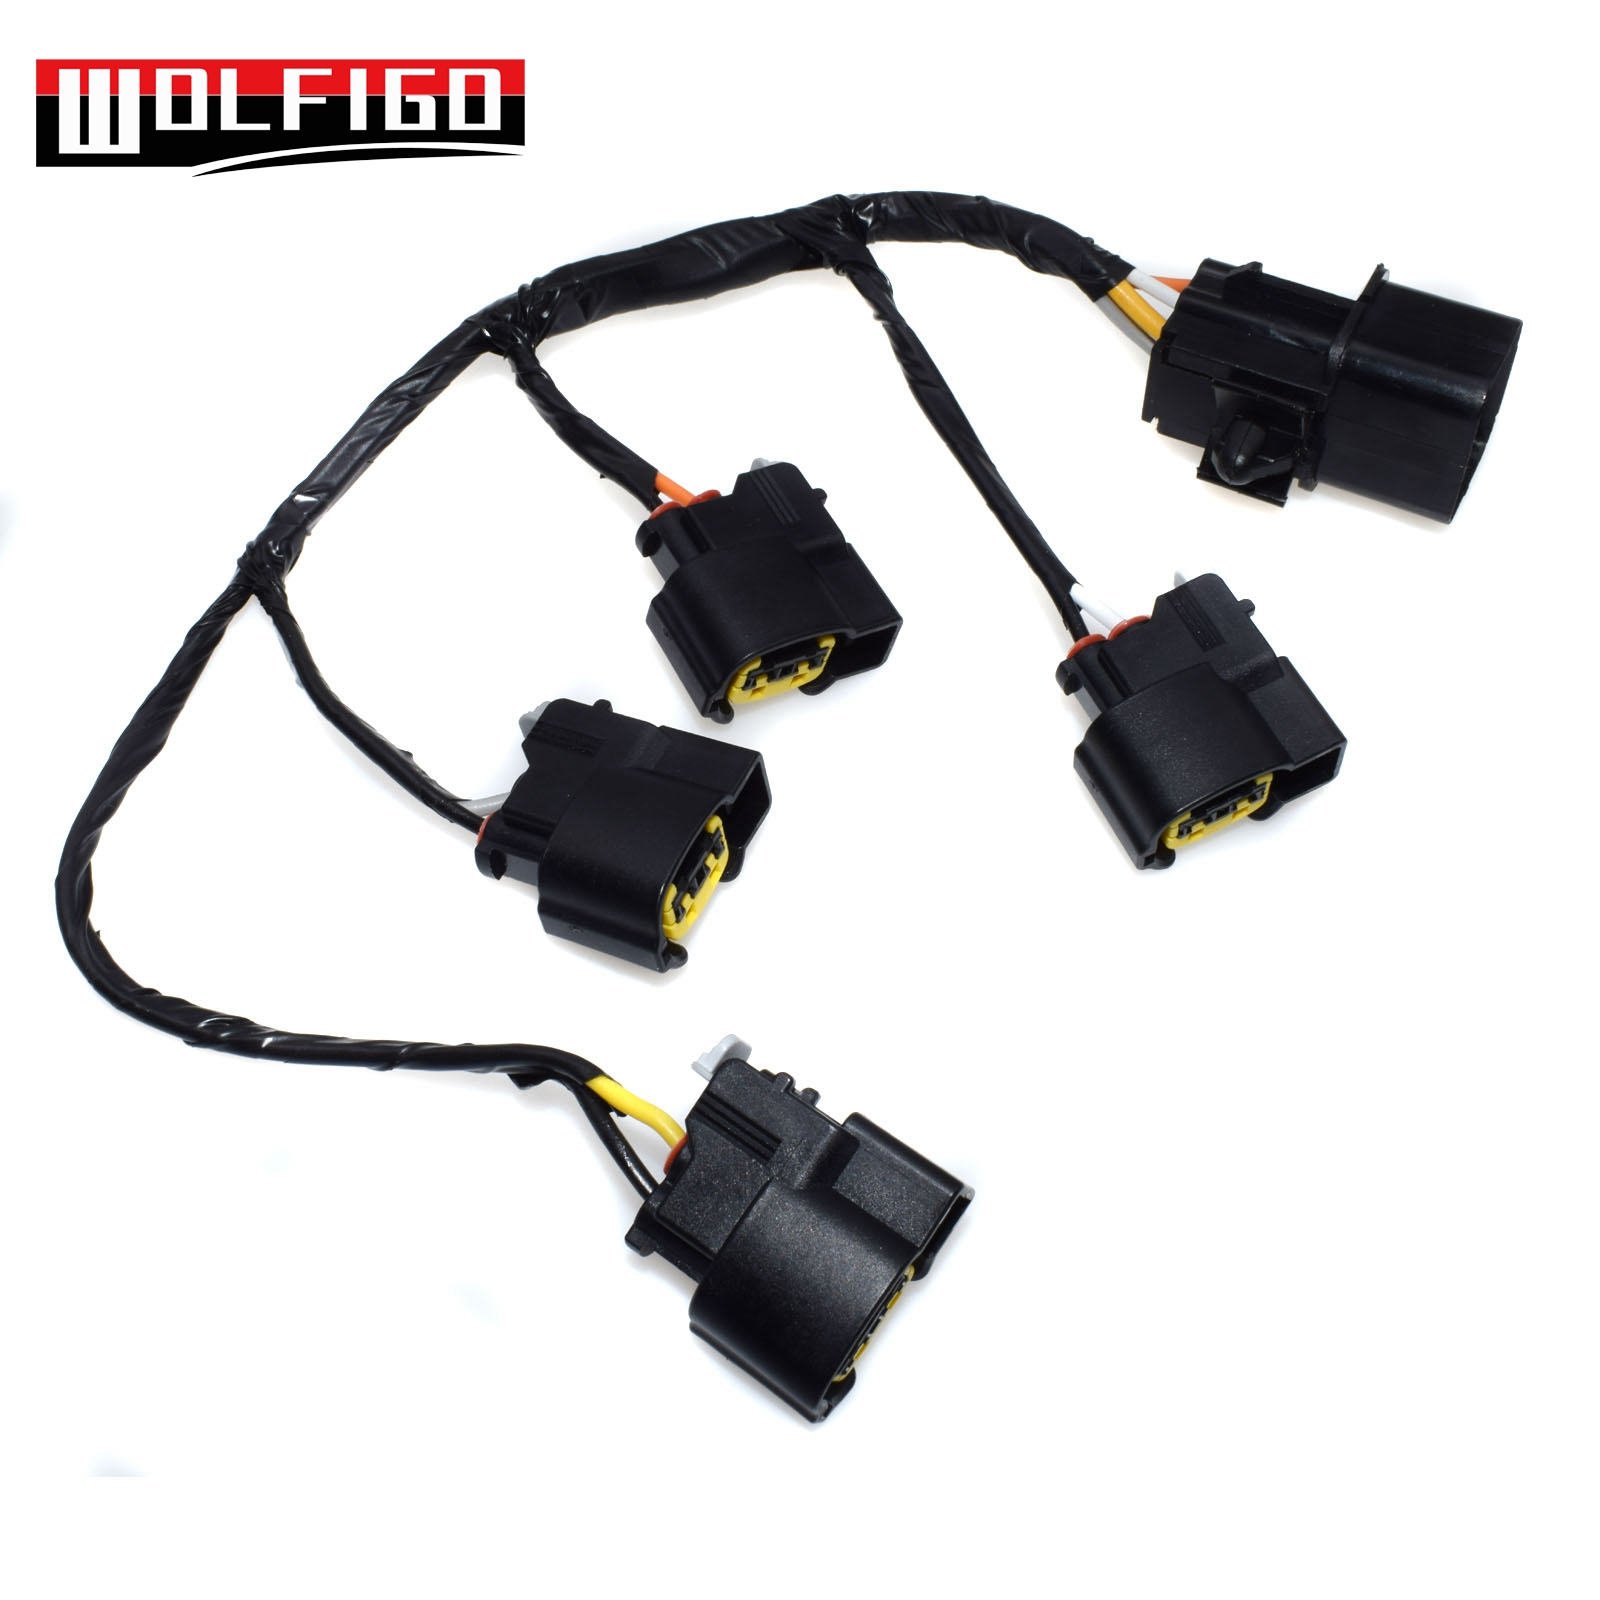 medium resolution of wolfigo new ignition coil wire harness for hyundai kia veloster rio 1 6l 27350 2b000 27350 2b000 273502b000